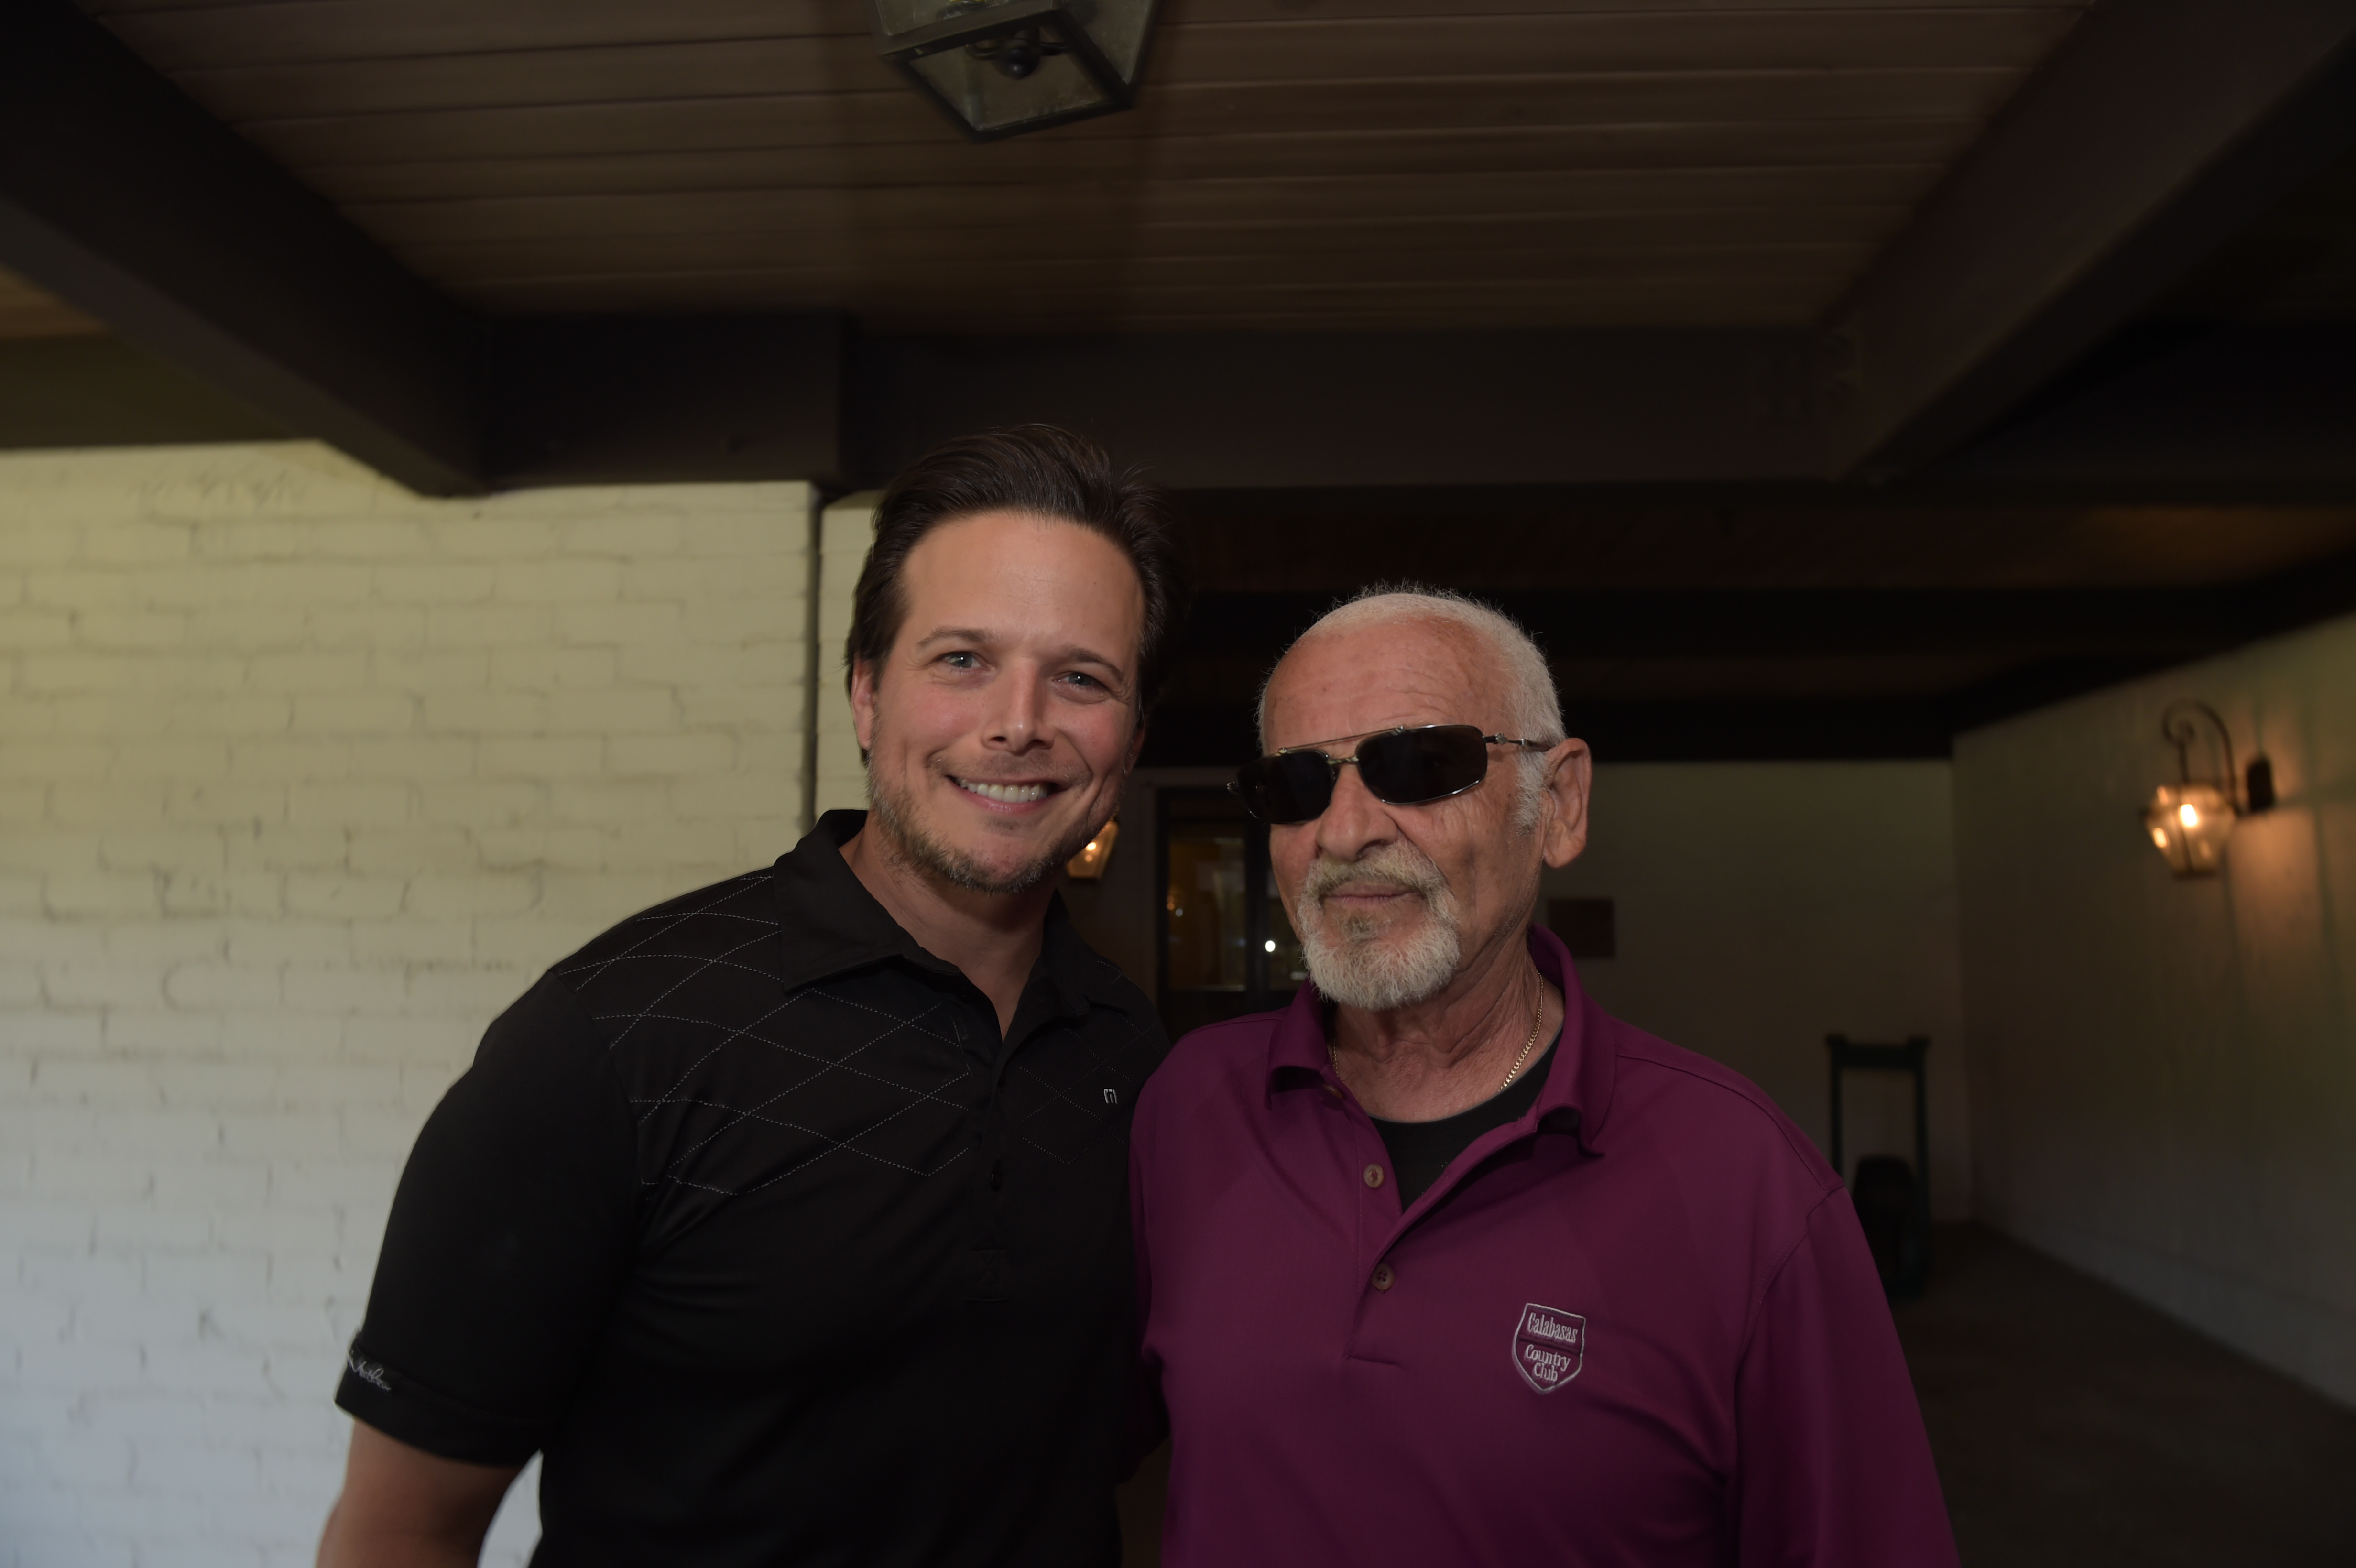 Host Scott Wolf with actor Joe Pesci at the Screen Actors Guild Foundation's 6th Annual Los Angeles Golf Classic on June 8, 2015 in Burbank, California. (Photo by Jason Kempin/Getty Images for The Screen Actors Guild Foundation)